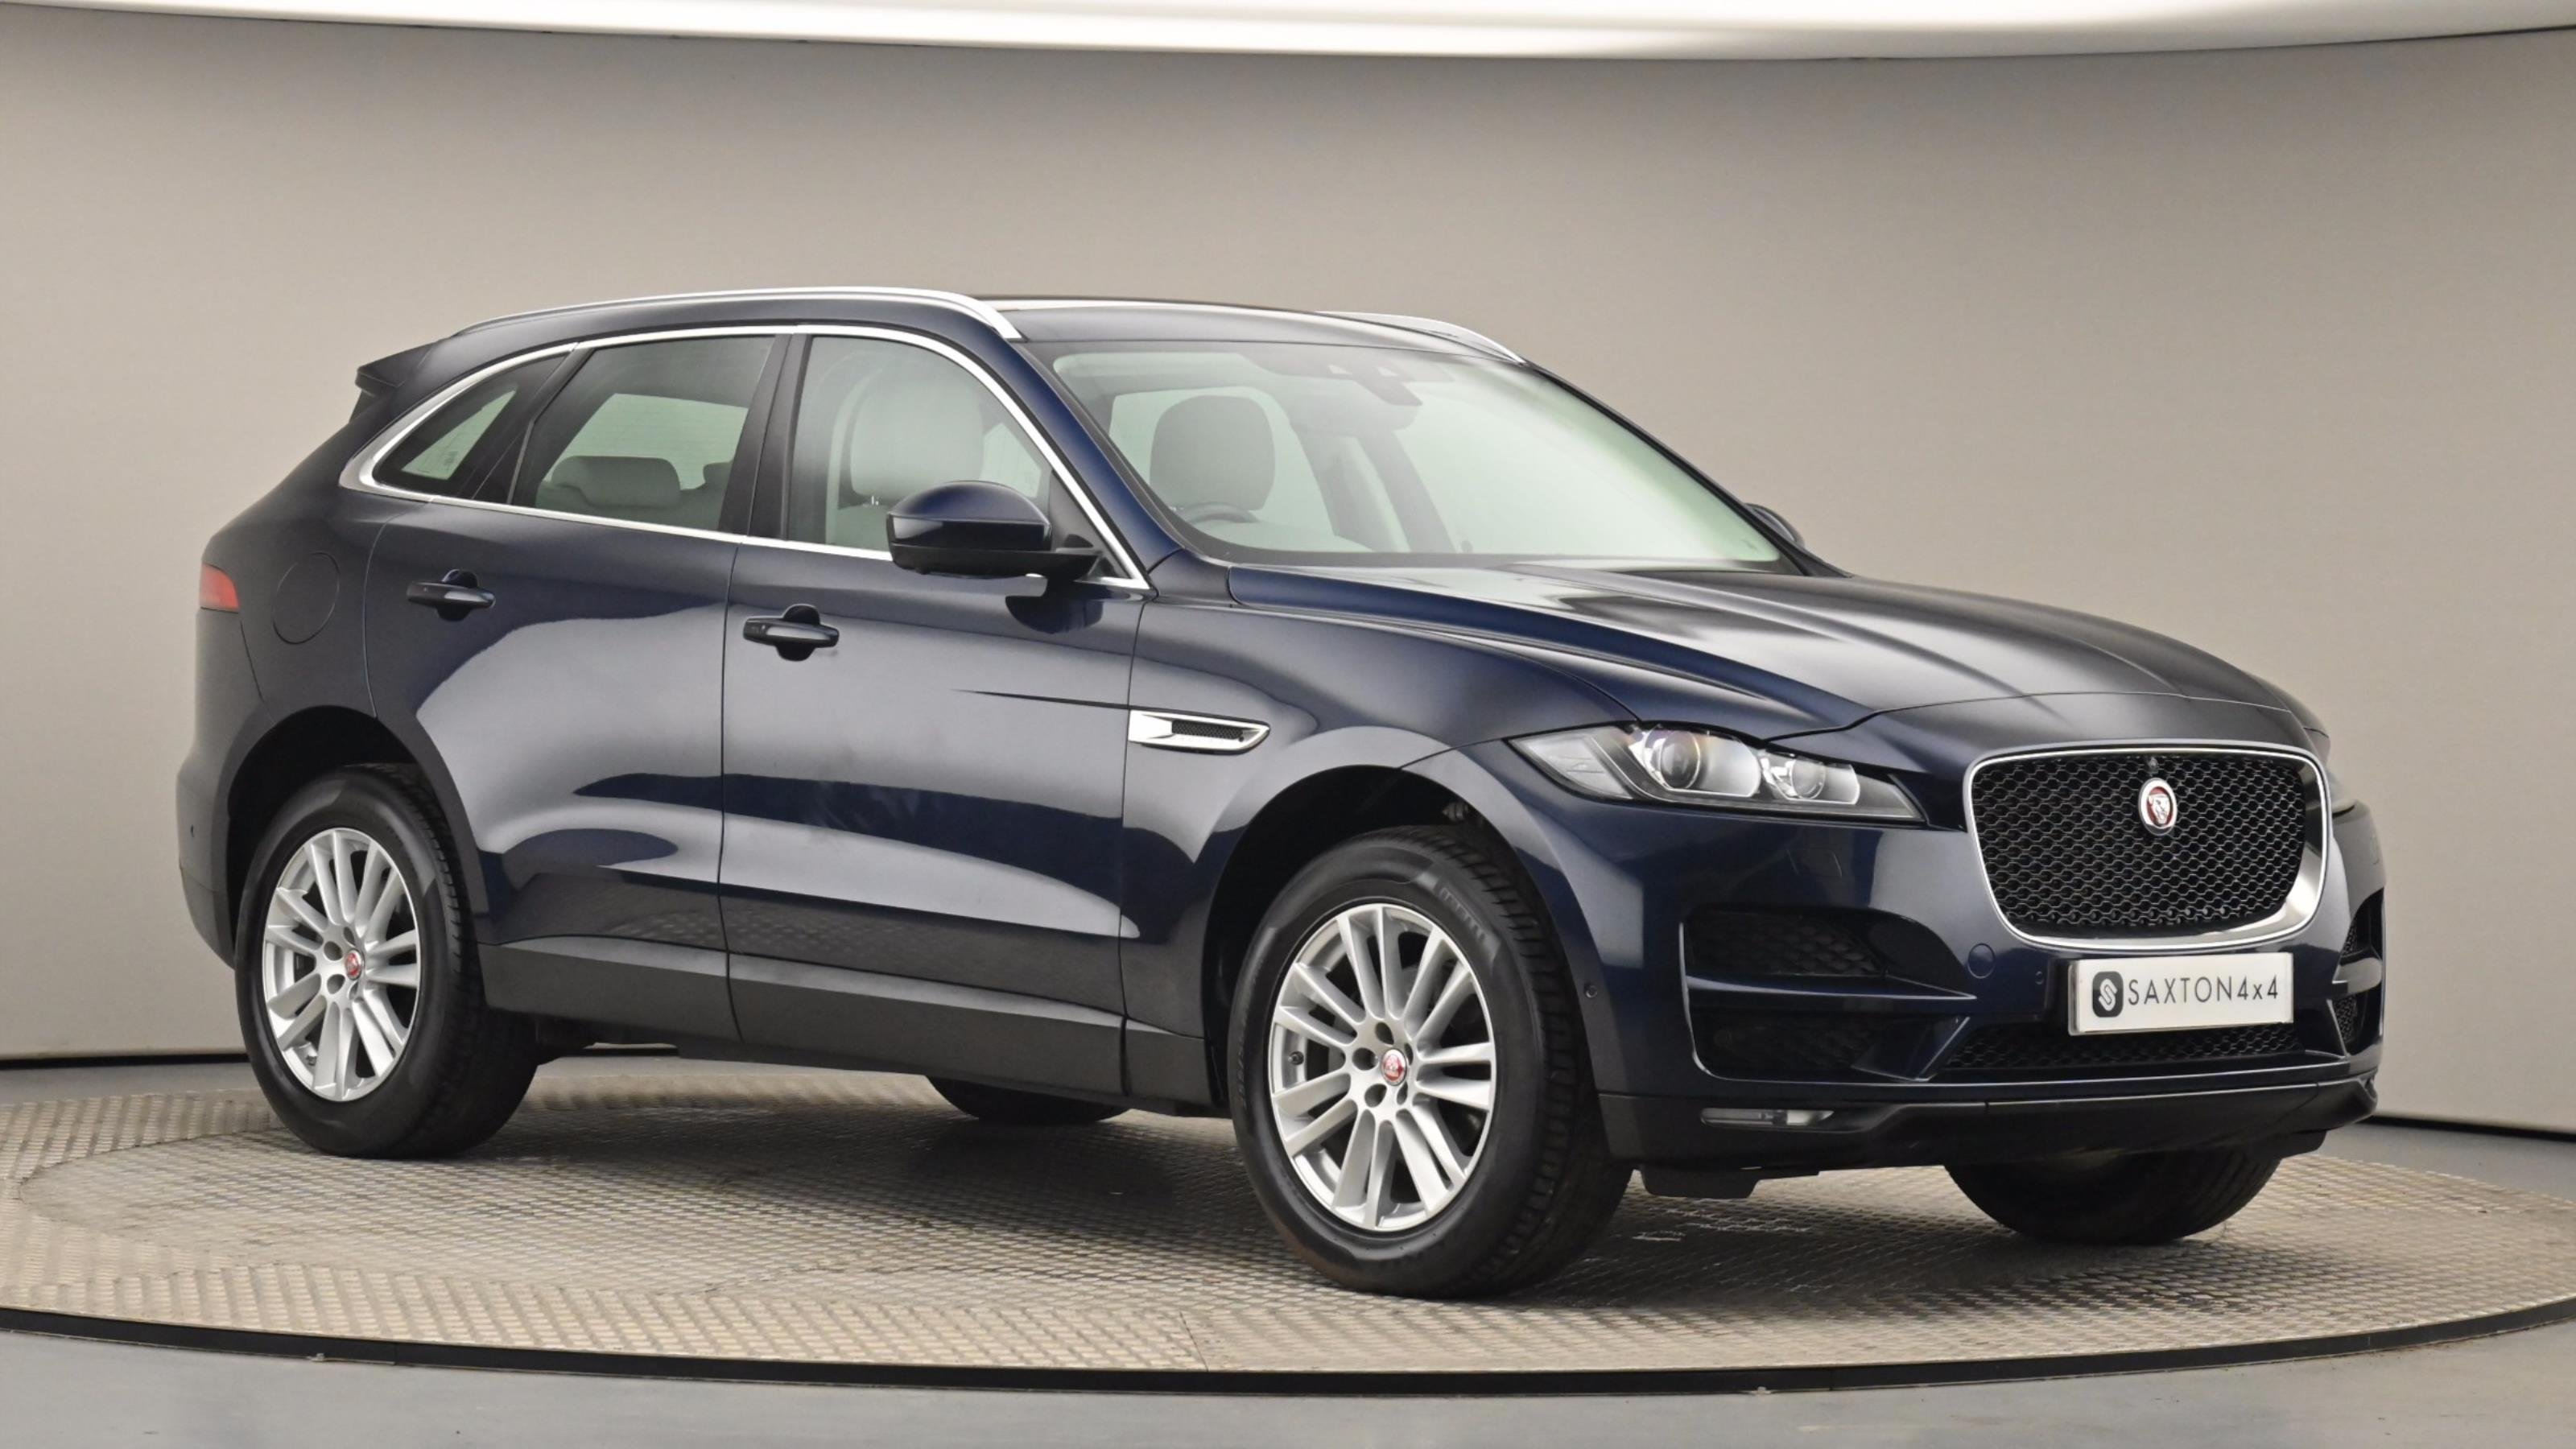 Used 2017 Jaguar F-PACE 2.0d Portfolio 5dr Auto AWD BLUE at Saxton4x4